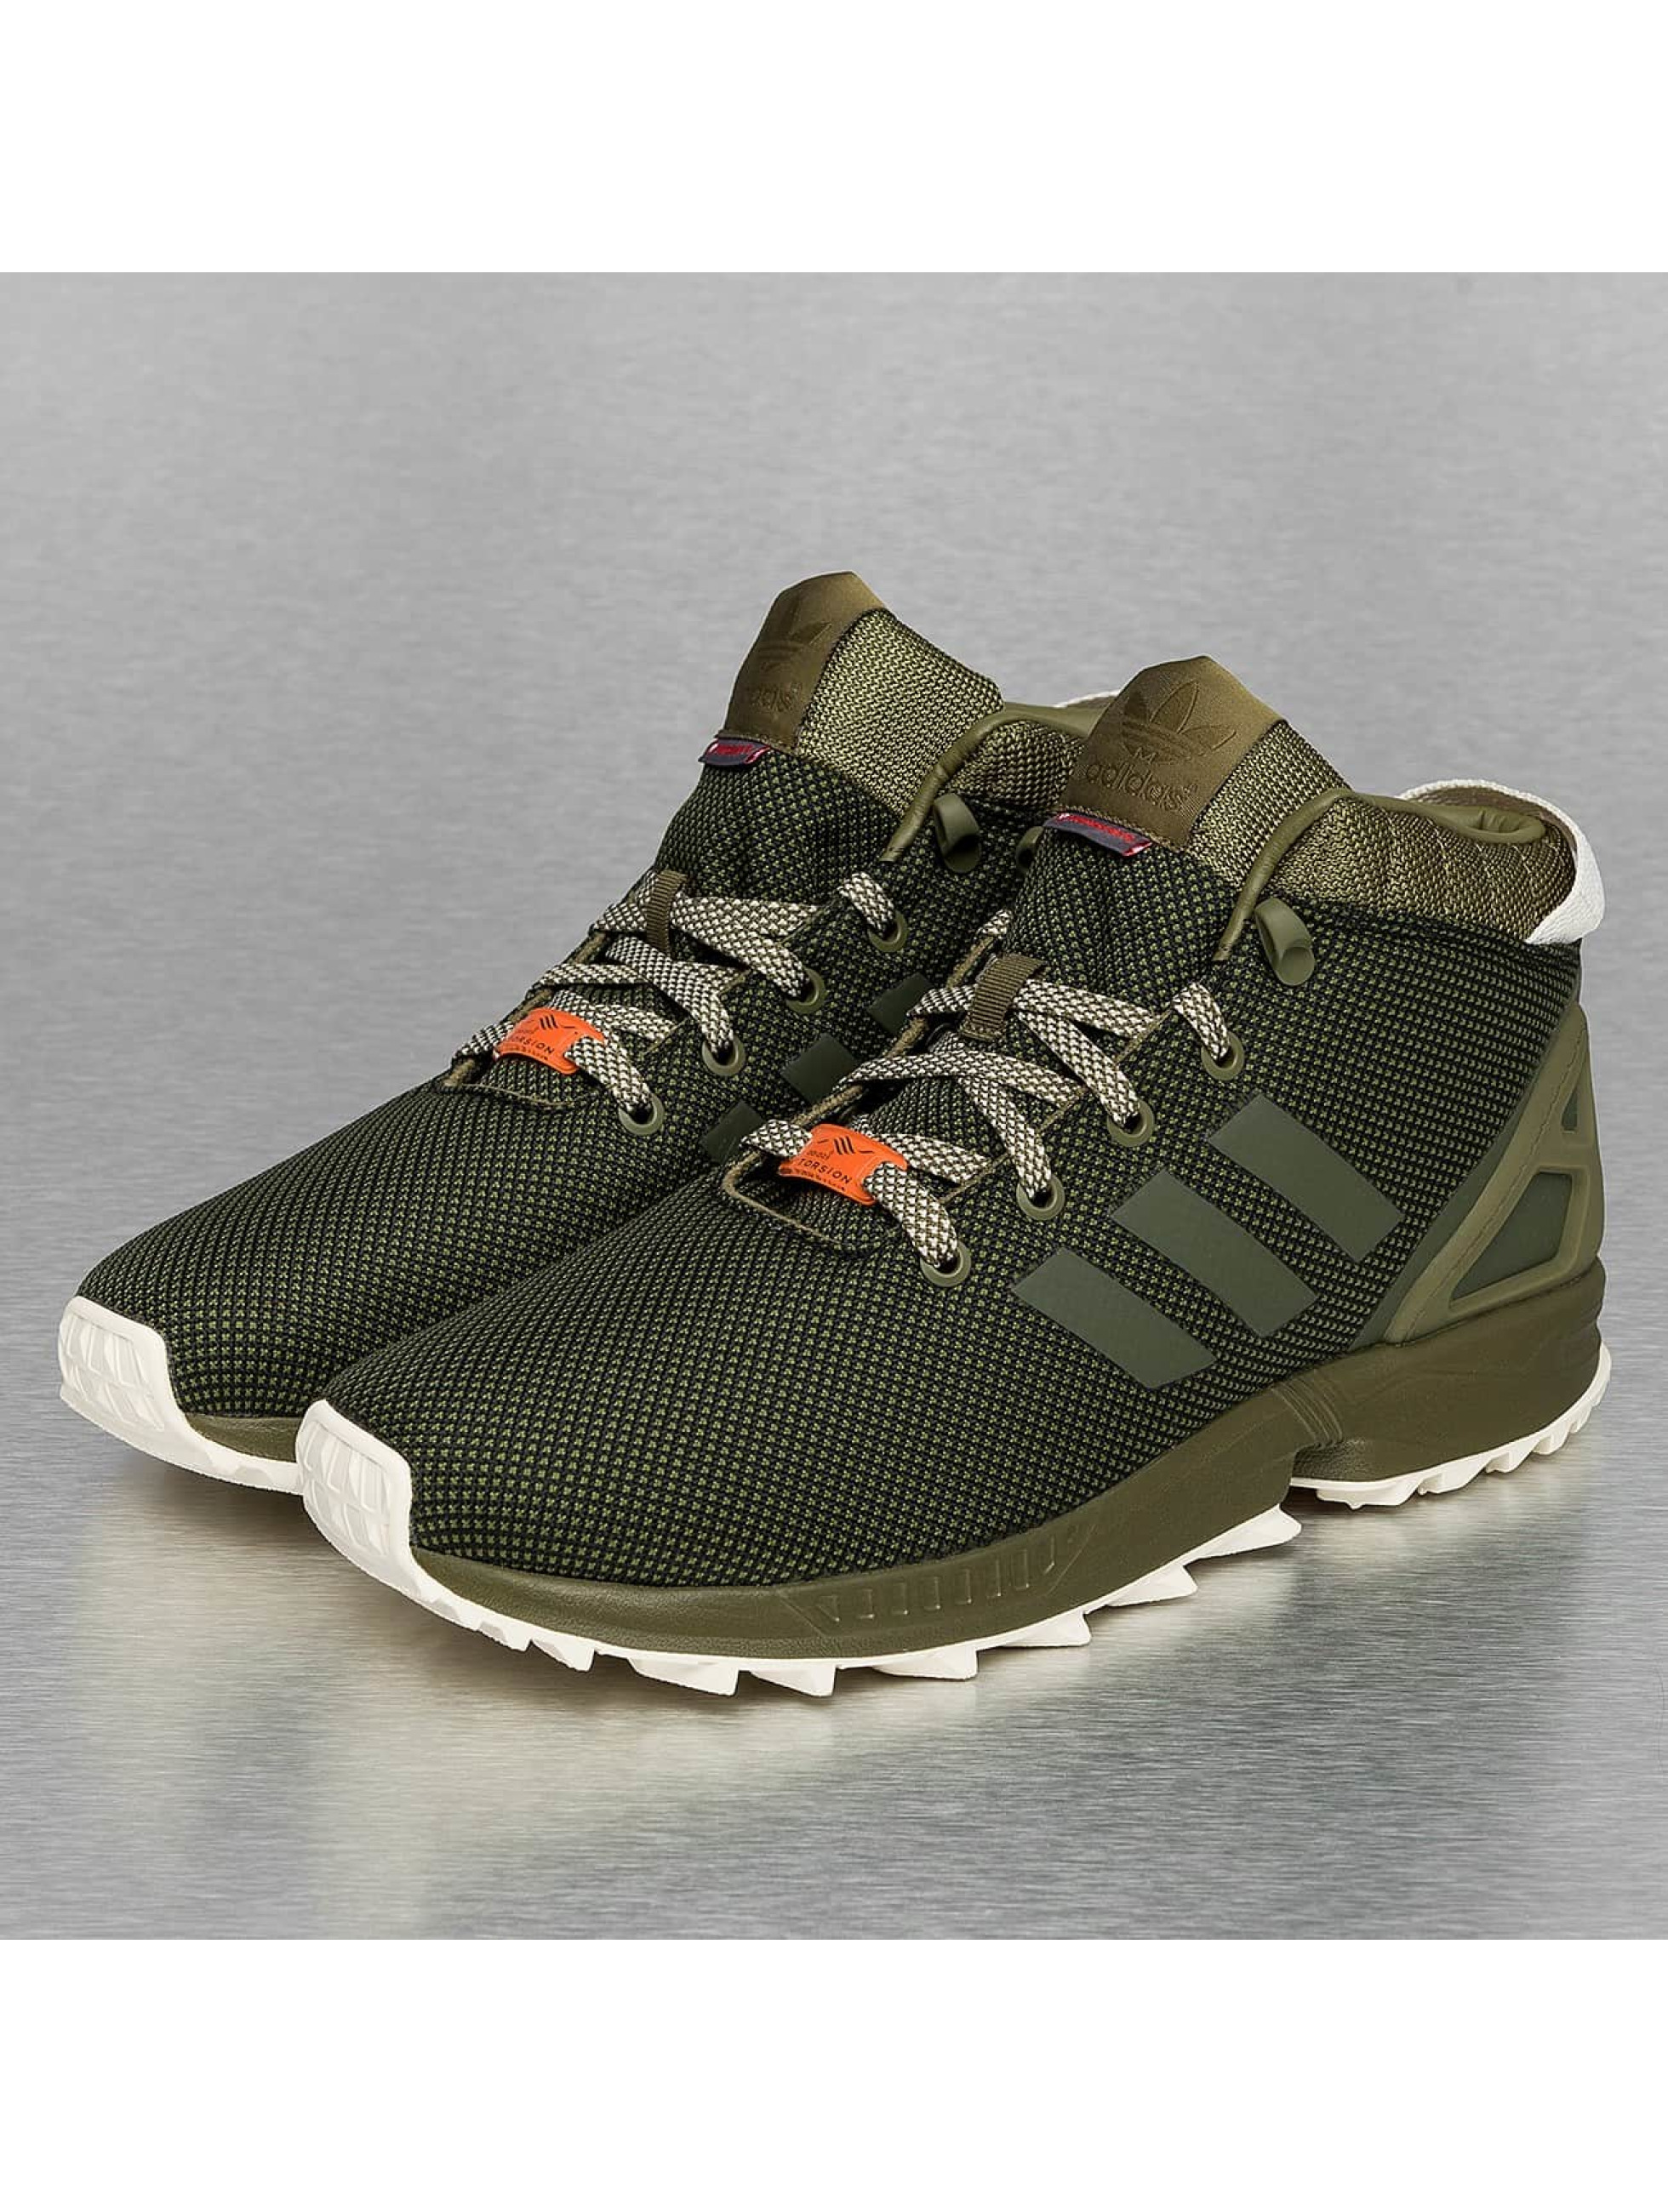 adidas originals zx flux 5 8 tr